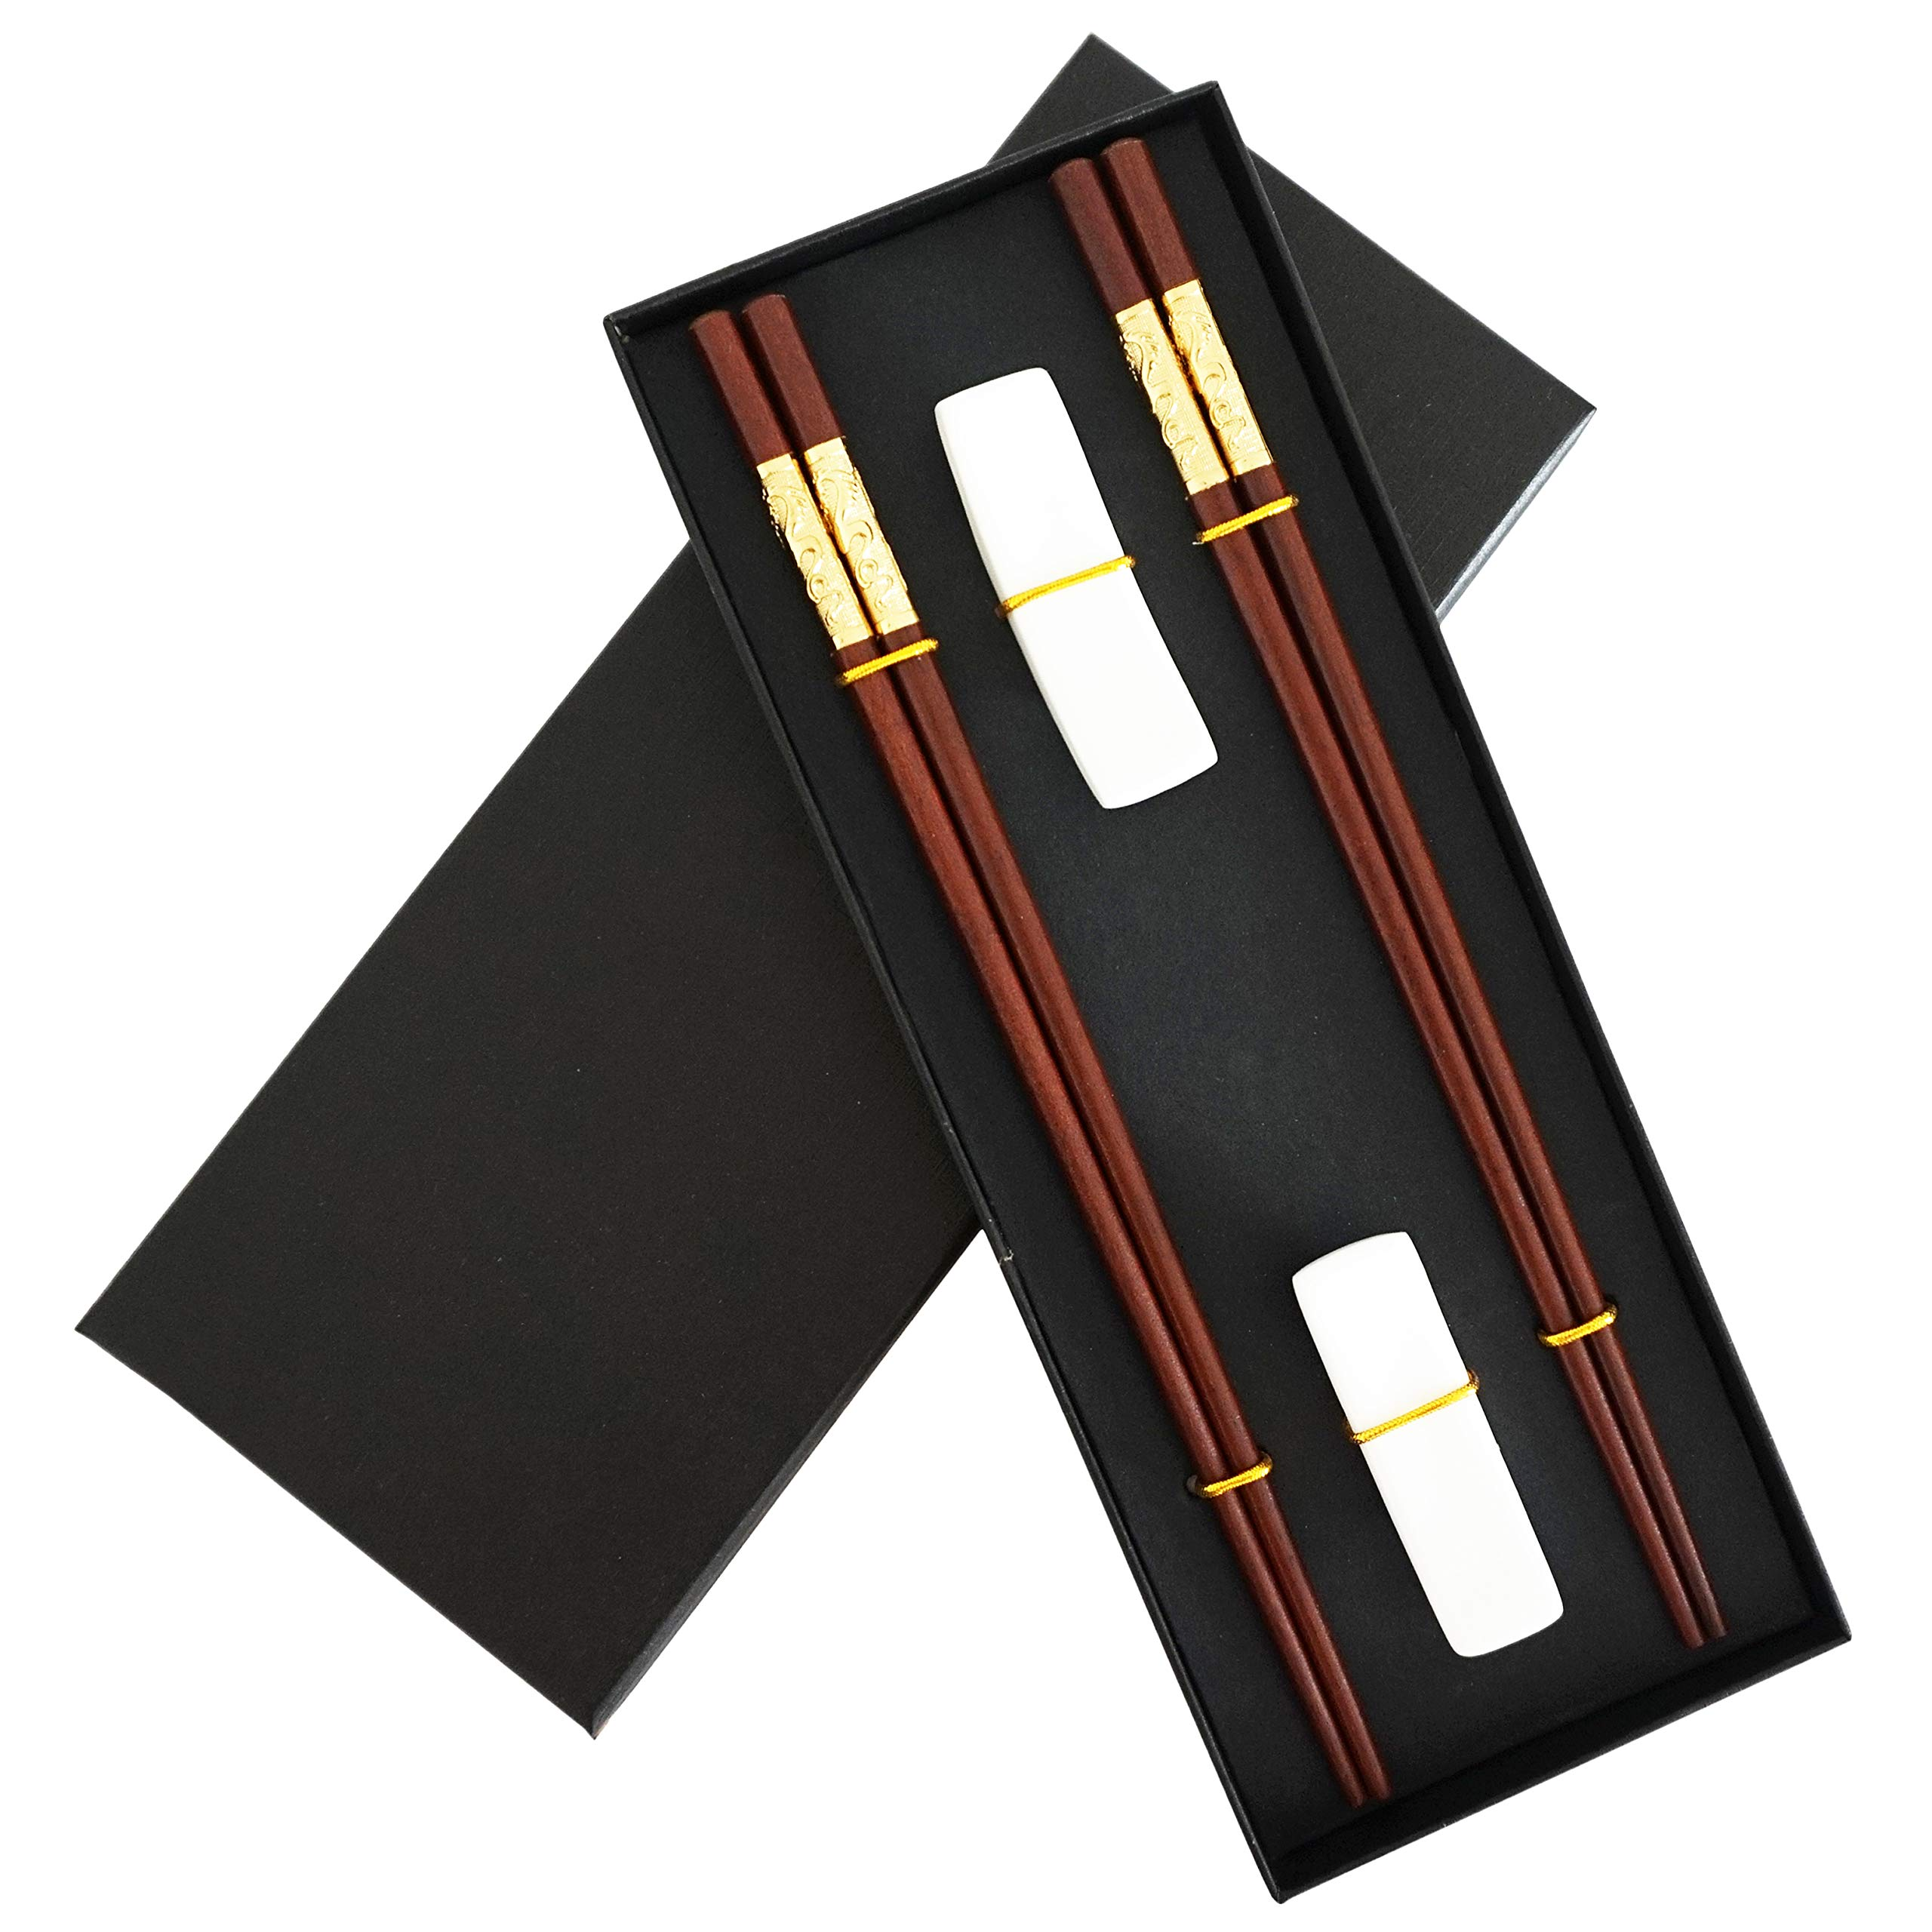 Chinese Dragon Chopsticks, Red Sandalwood, Reusable Classic Style, 2 Pairs Wooden Chopsticks with Holder and Case, Value Gift Set